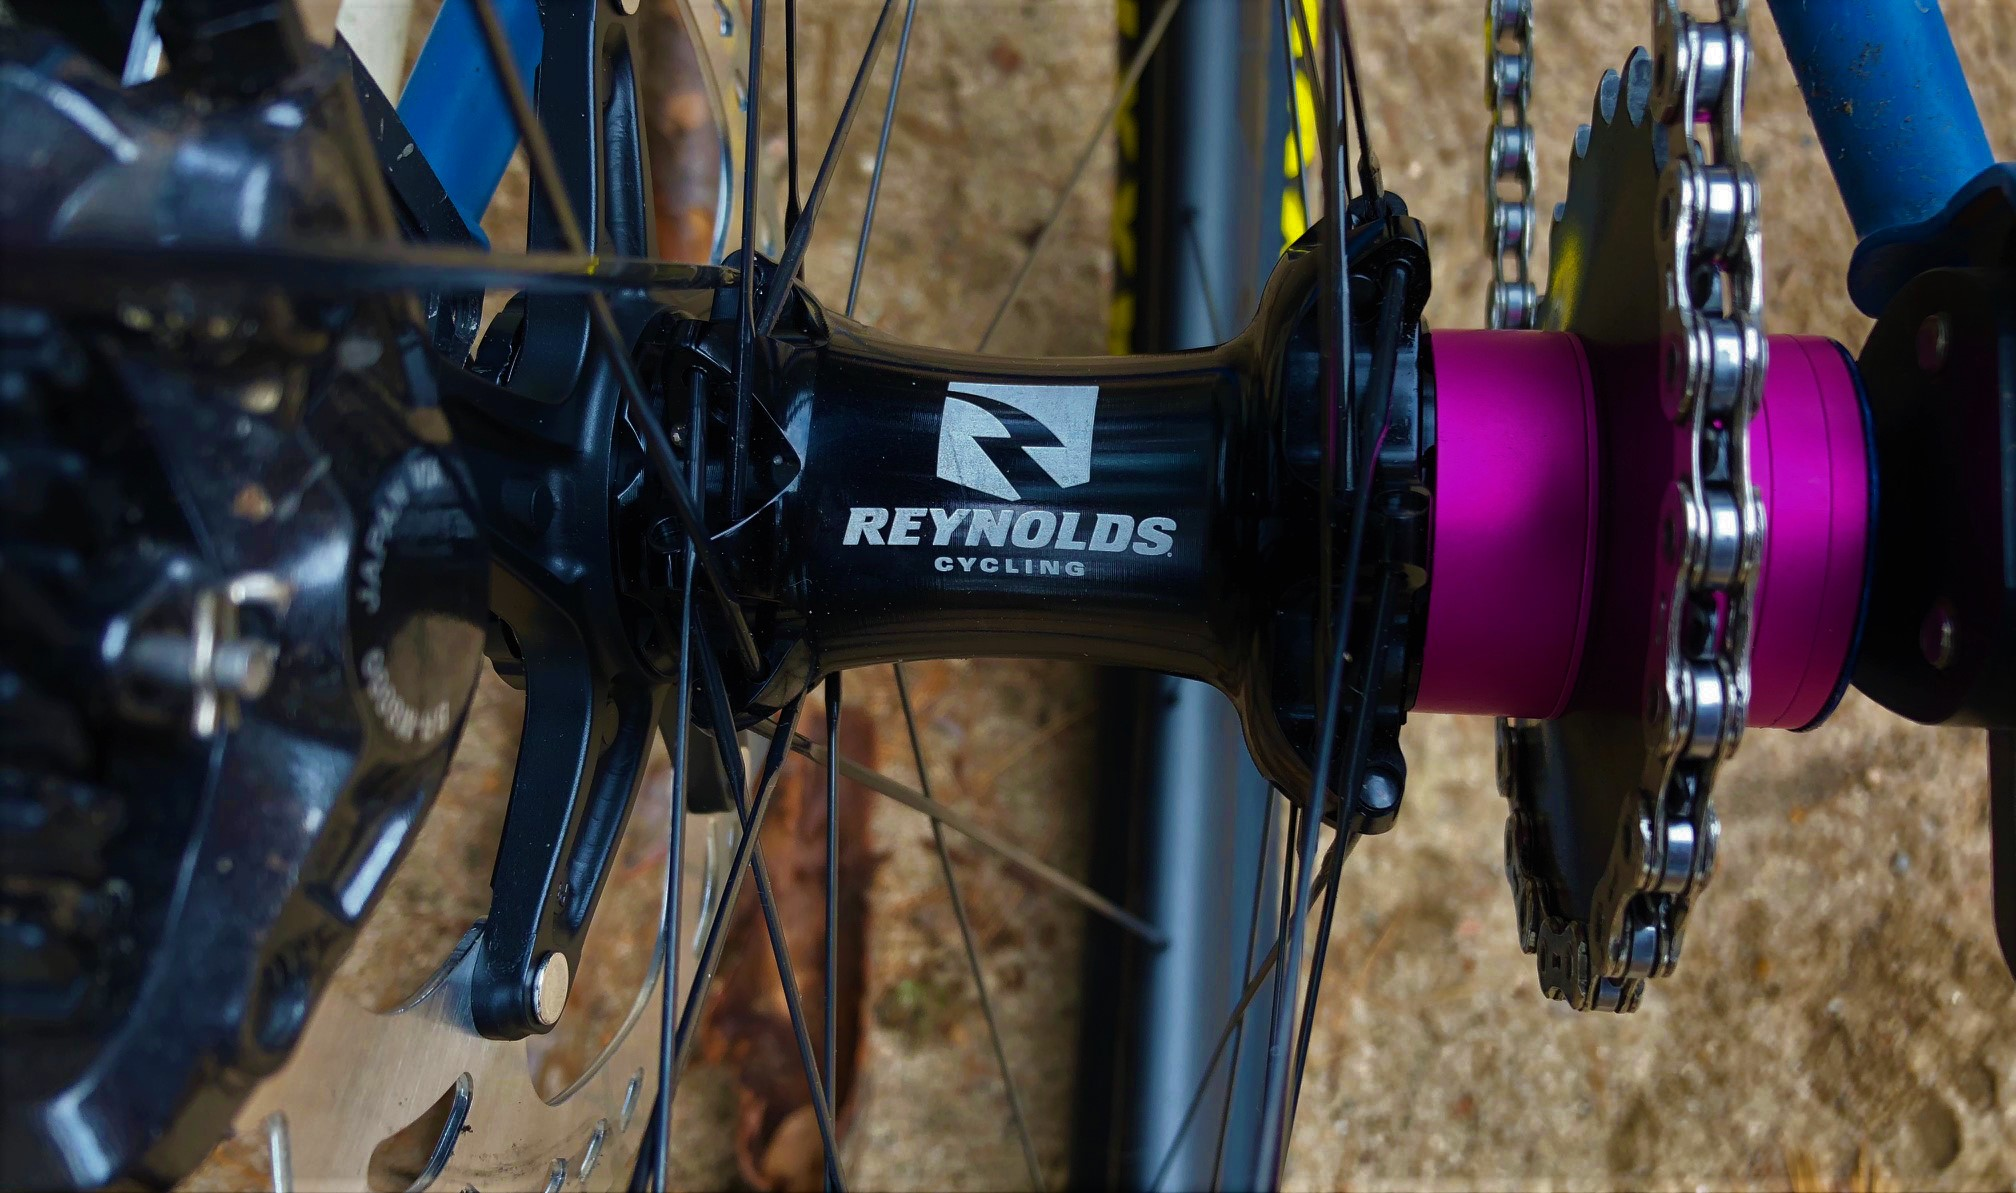 Reynolds XC259s Wheel Review